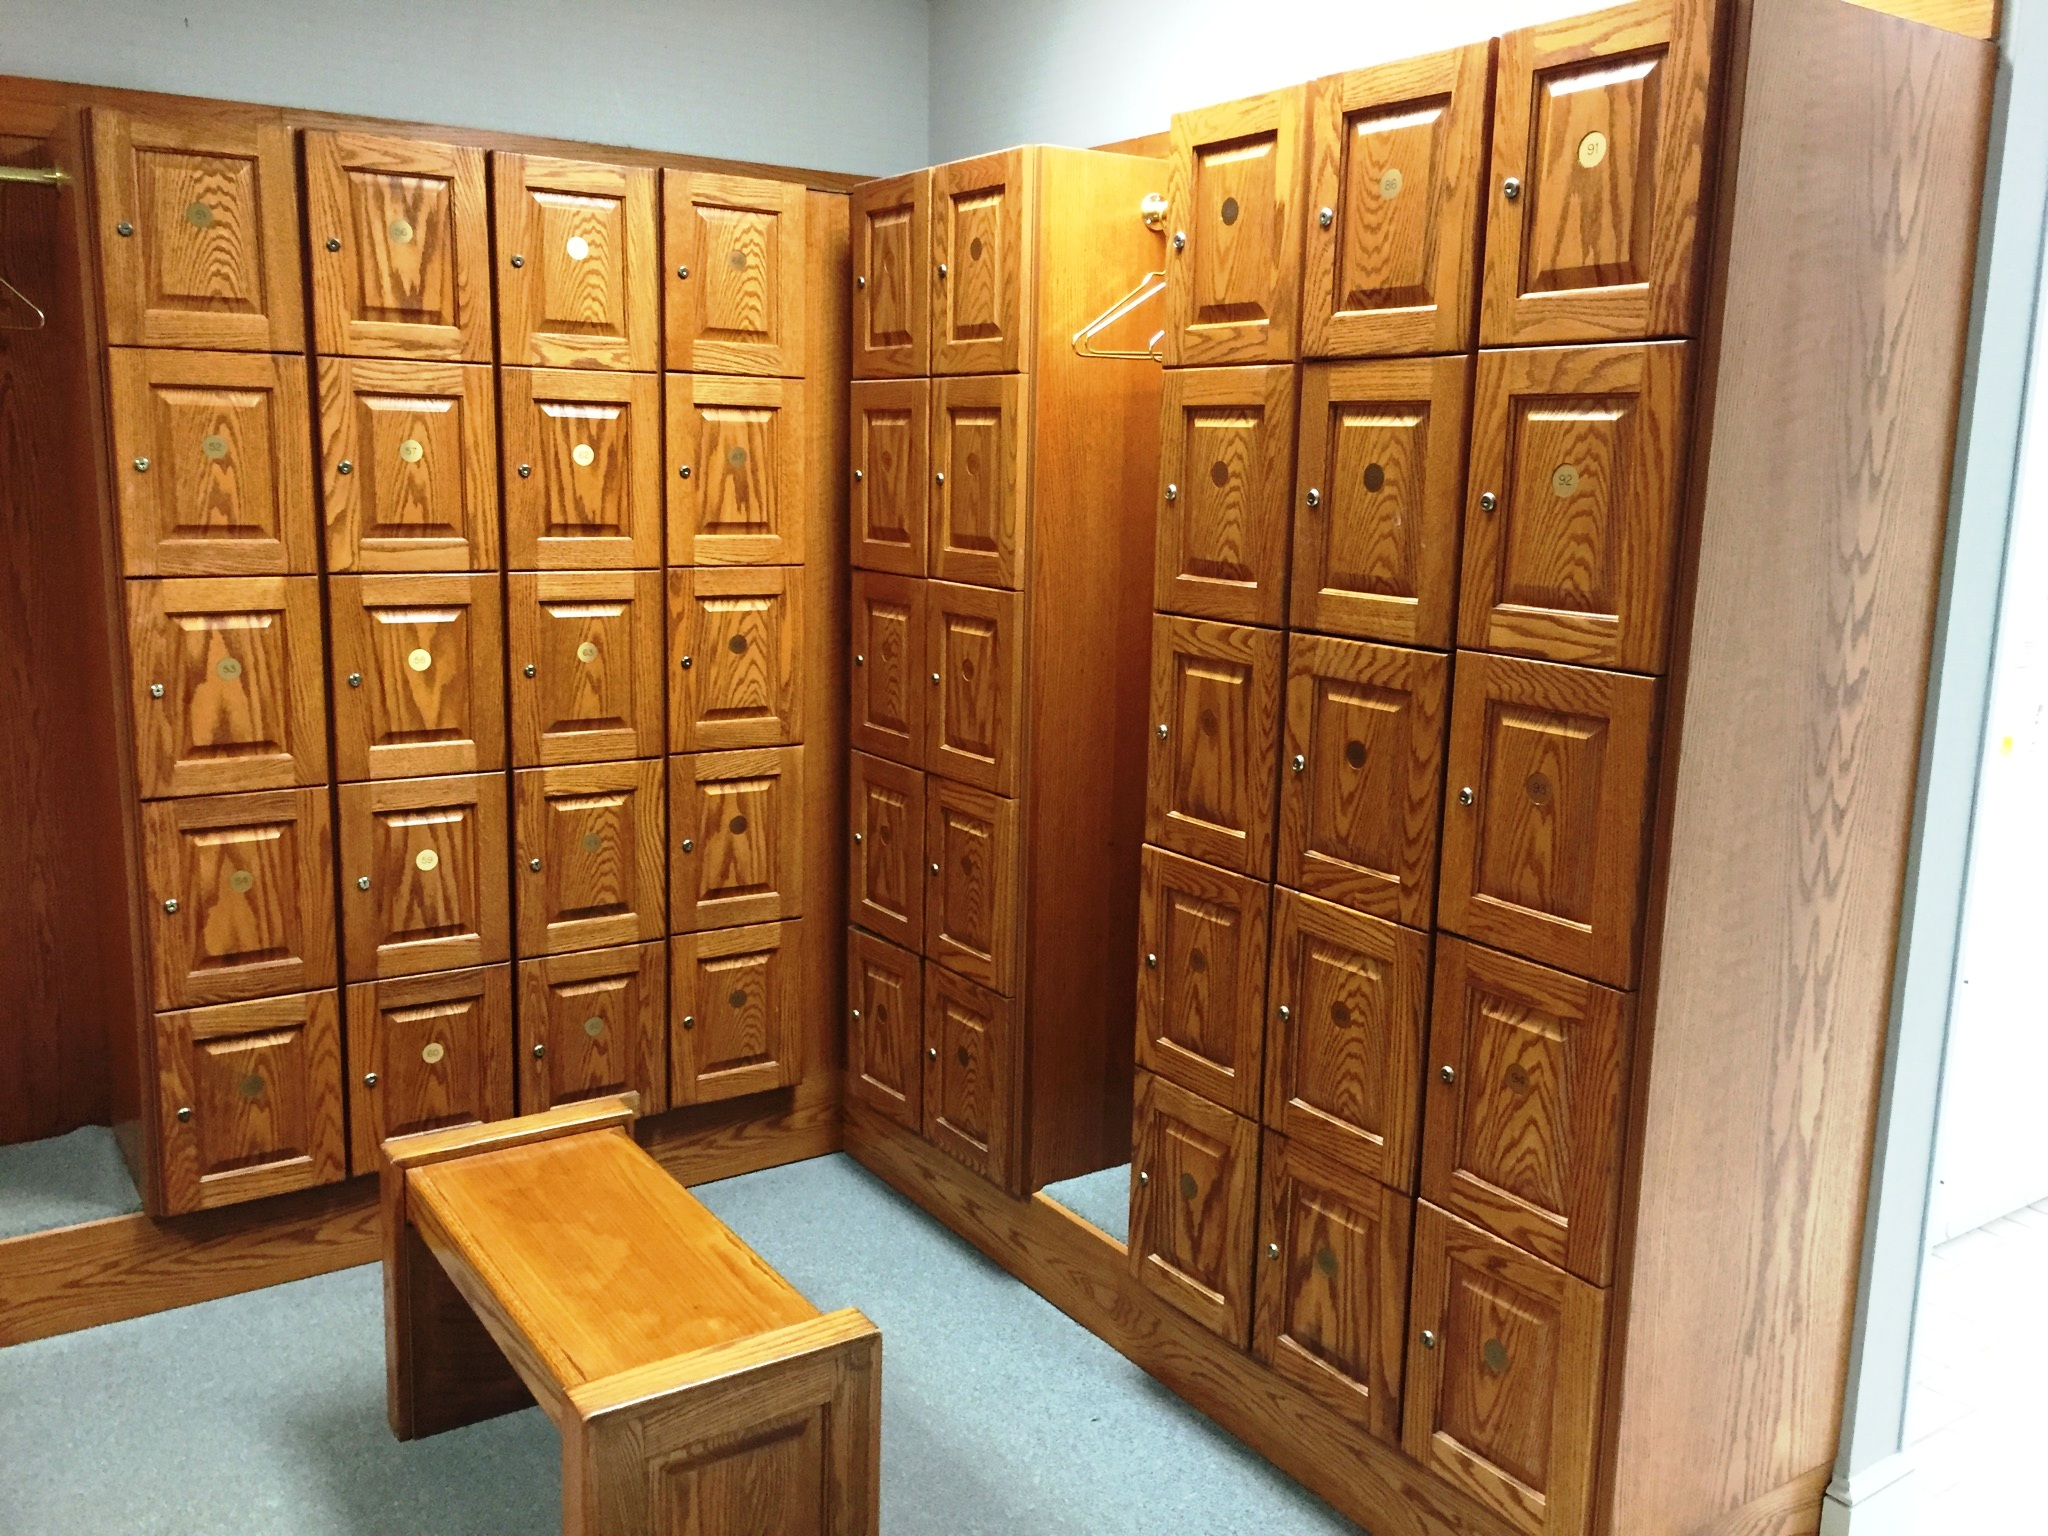 Used Lockers for Sale at a fraction of the cost (125 Doors)